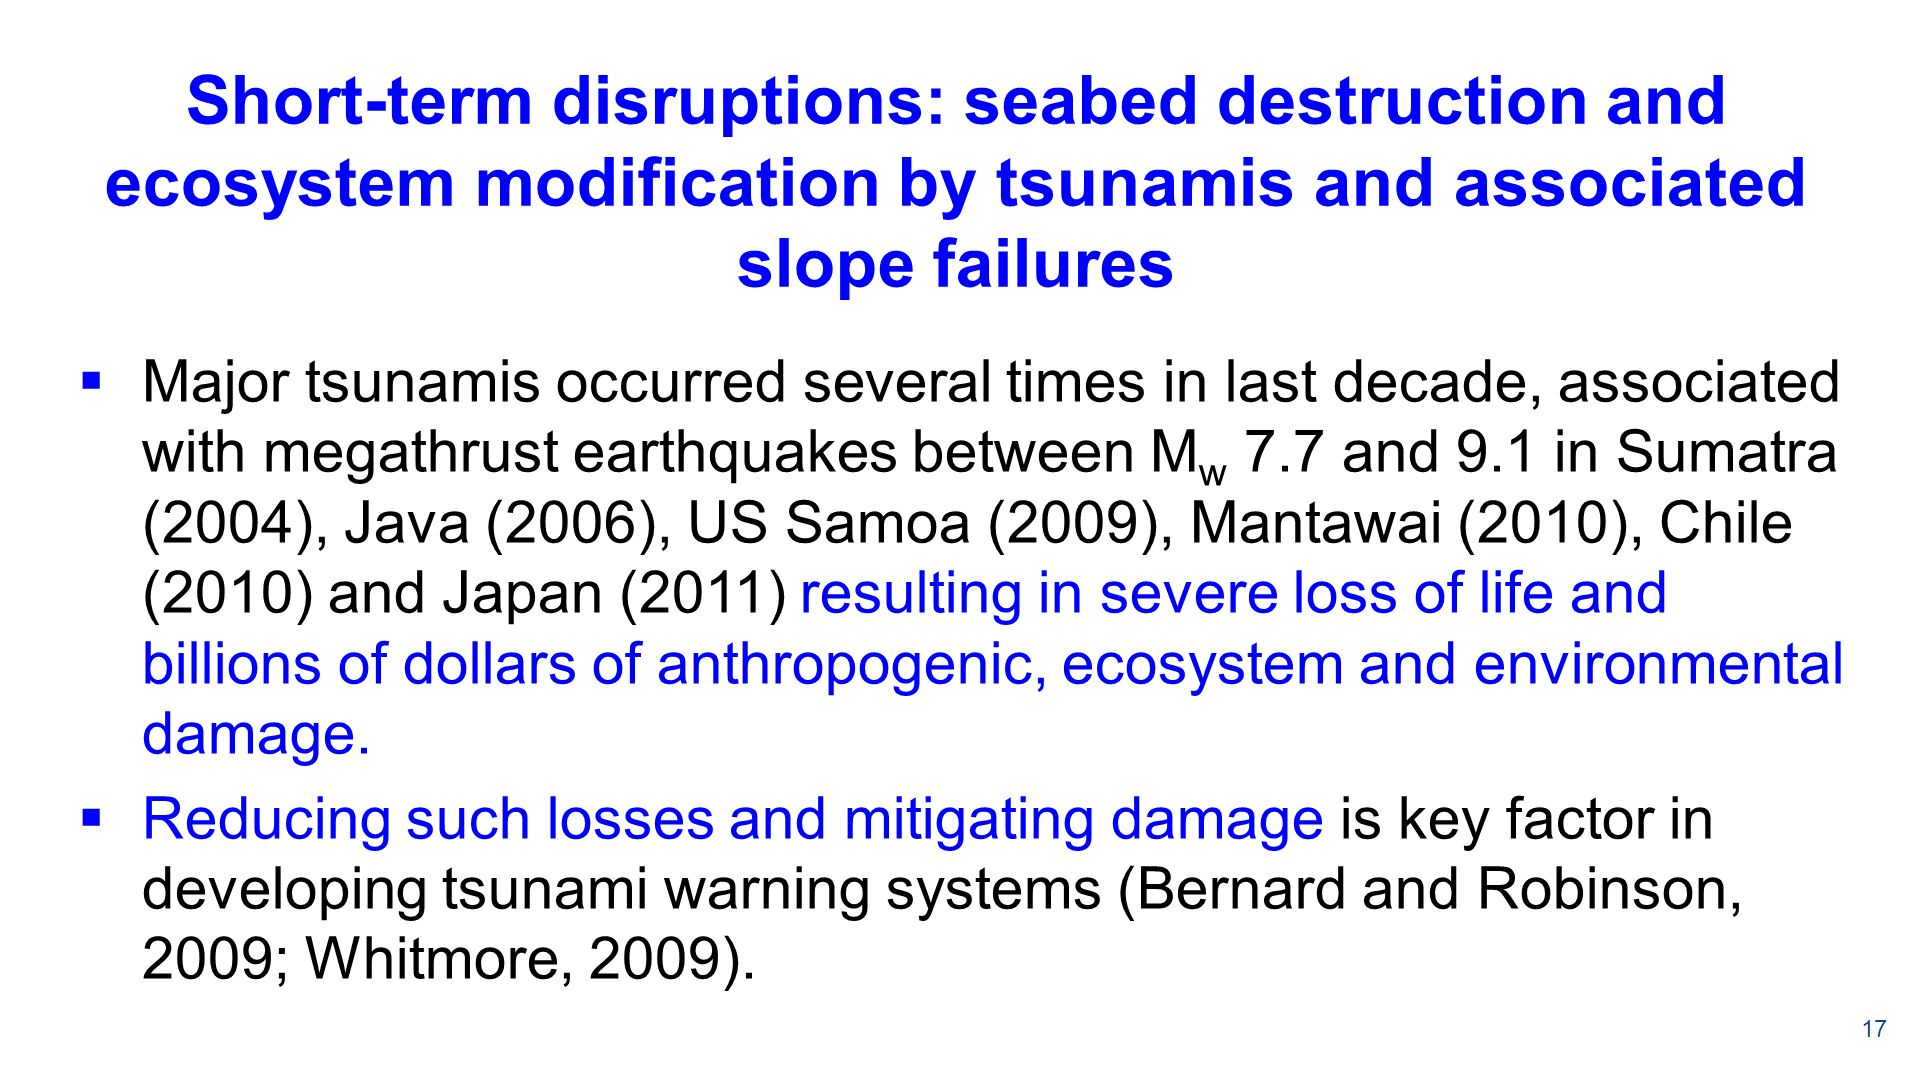 Short-term disruptions: seabed destruction and ecosystem modification by tsunamis and associated slope failures Major tsunamis occurred several times in last decade, associated with megathrust earthquakes between M w 7.7 and 9.1 in Sumatra (2004), Java (2006), US Samoa (2009), Mantawai (2010), Chile (2010) and Japan (2011) resulting in severe loss of life and billions of dollars of anthropogenic, ecosystem and environmental damage.